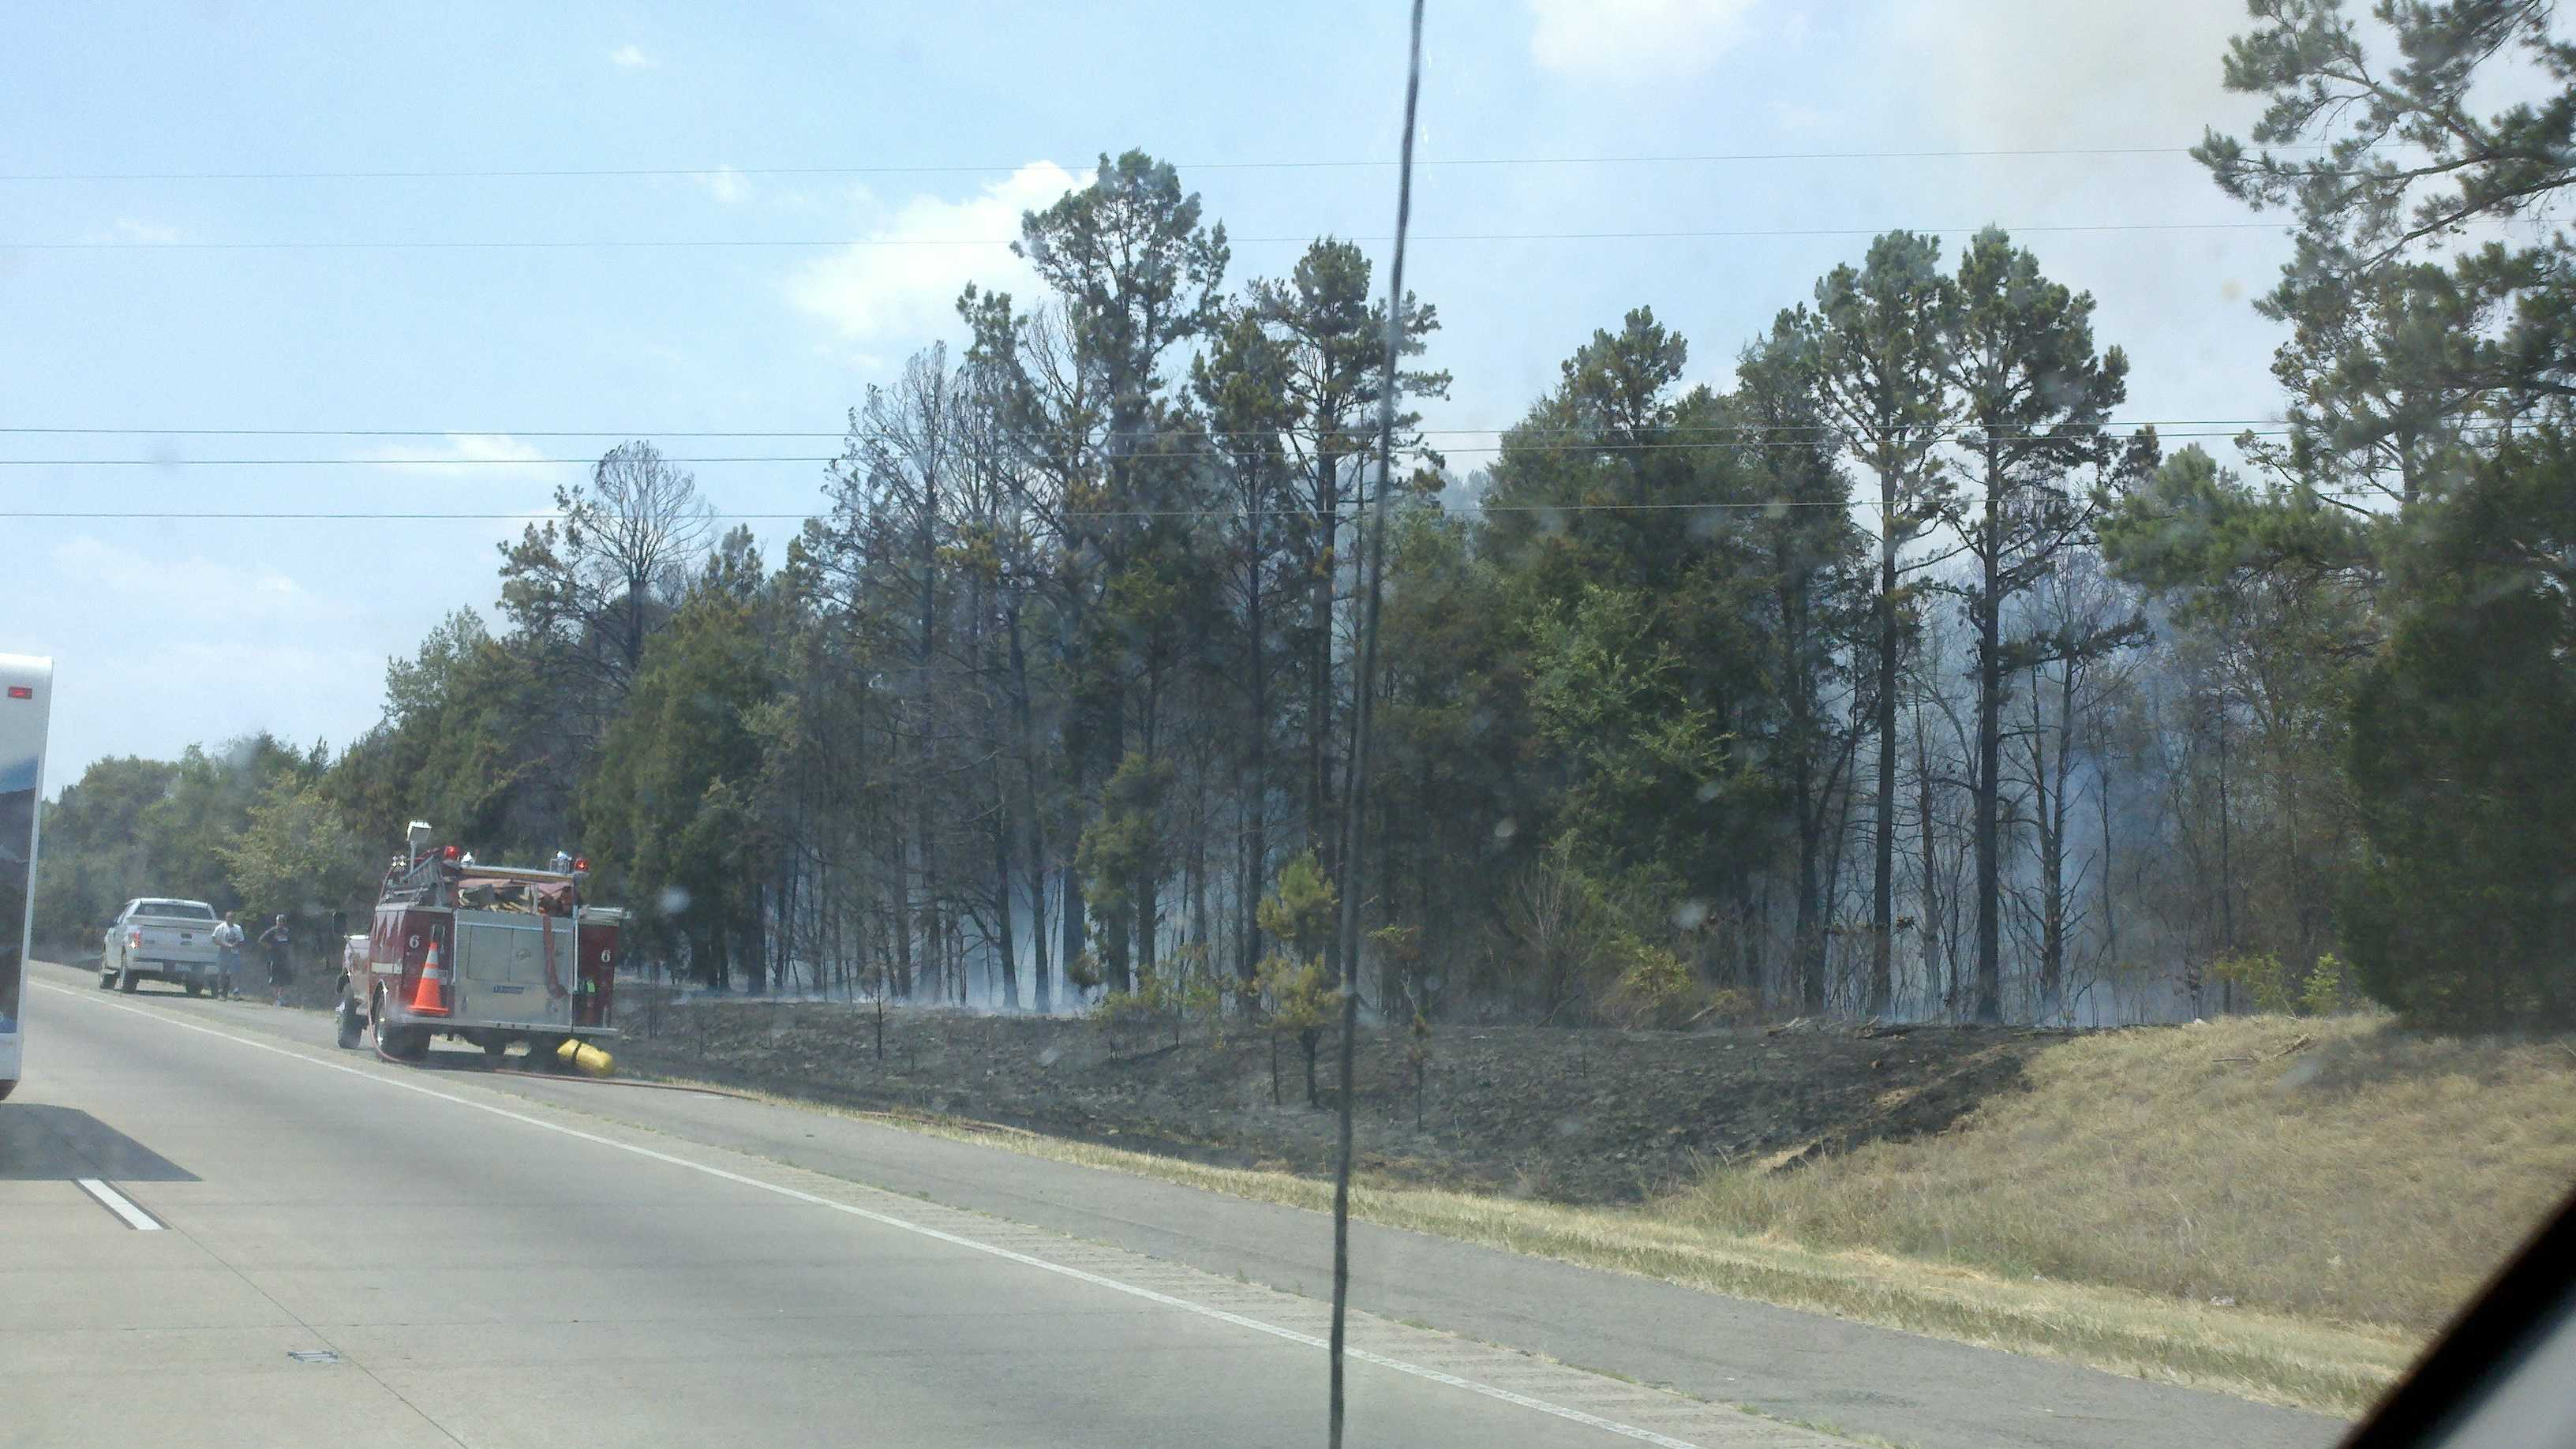 Dispatchers say this fire started along the interstate and spread out into the county. You can see some of the damage left behind by the wildfire.